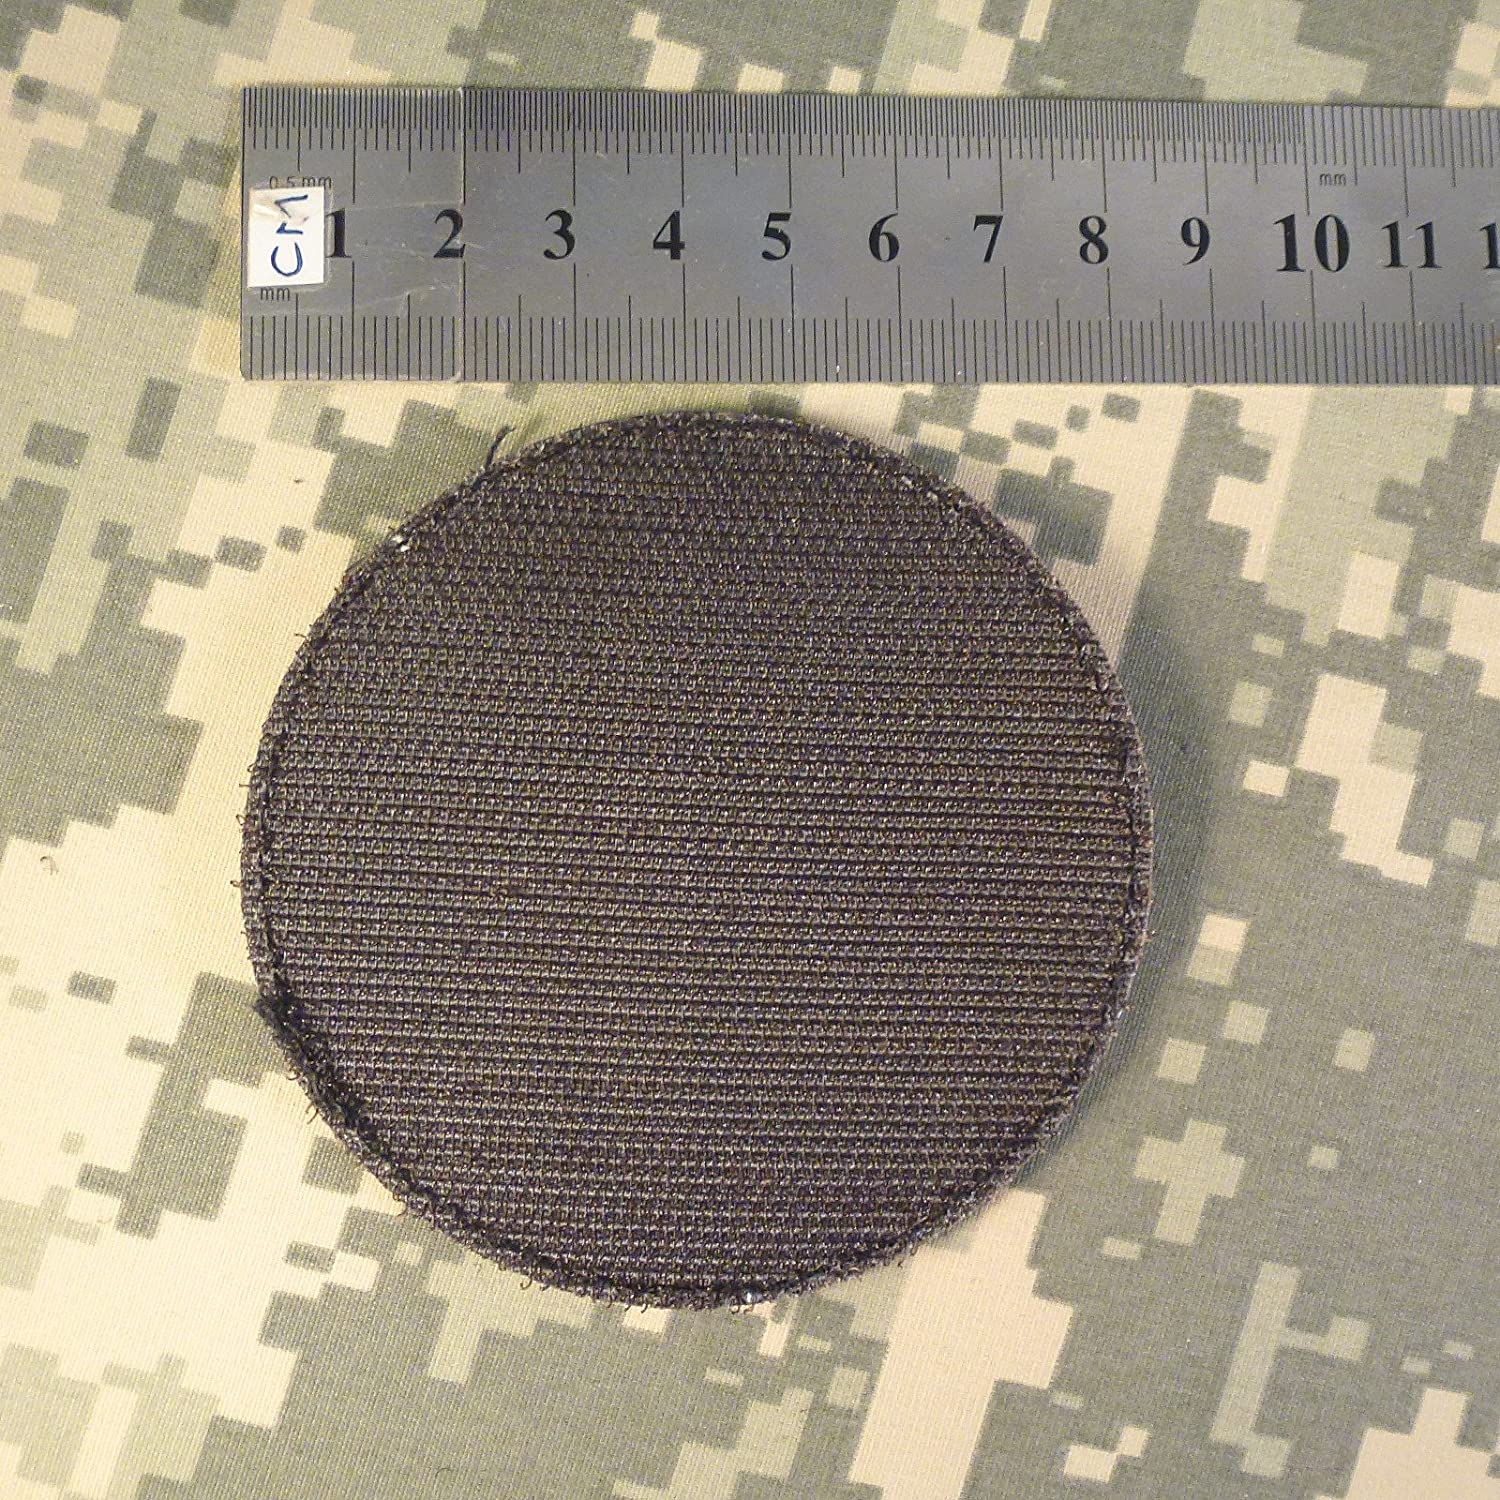 2AFTER1 All Black ACU US Navy Seals The Only Easy Day Was Yesterday DEVGRU Subdued Morale PVC Fastener Patch